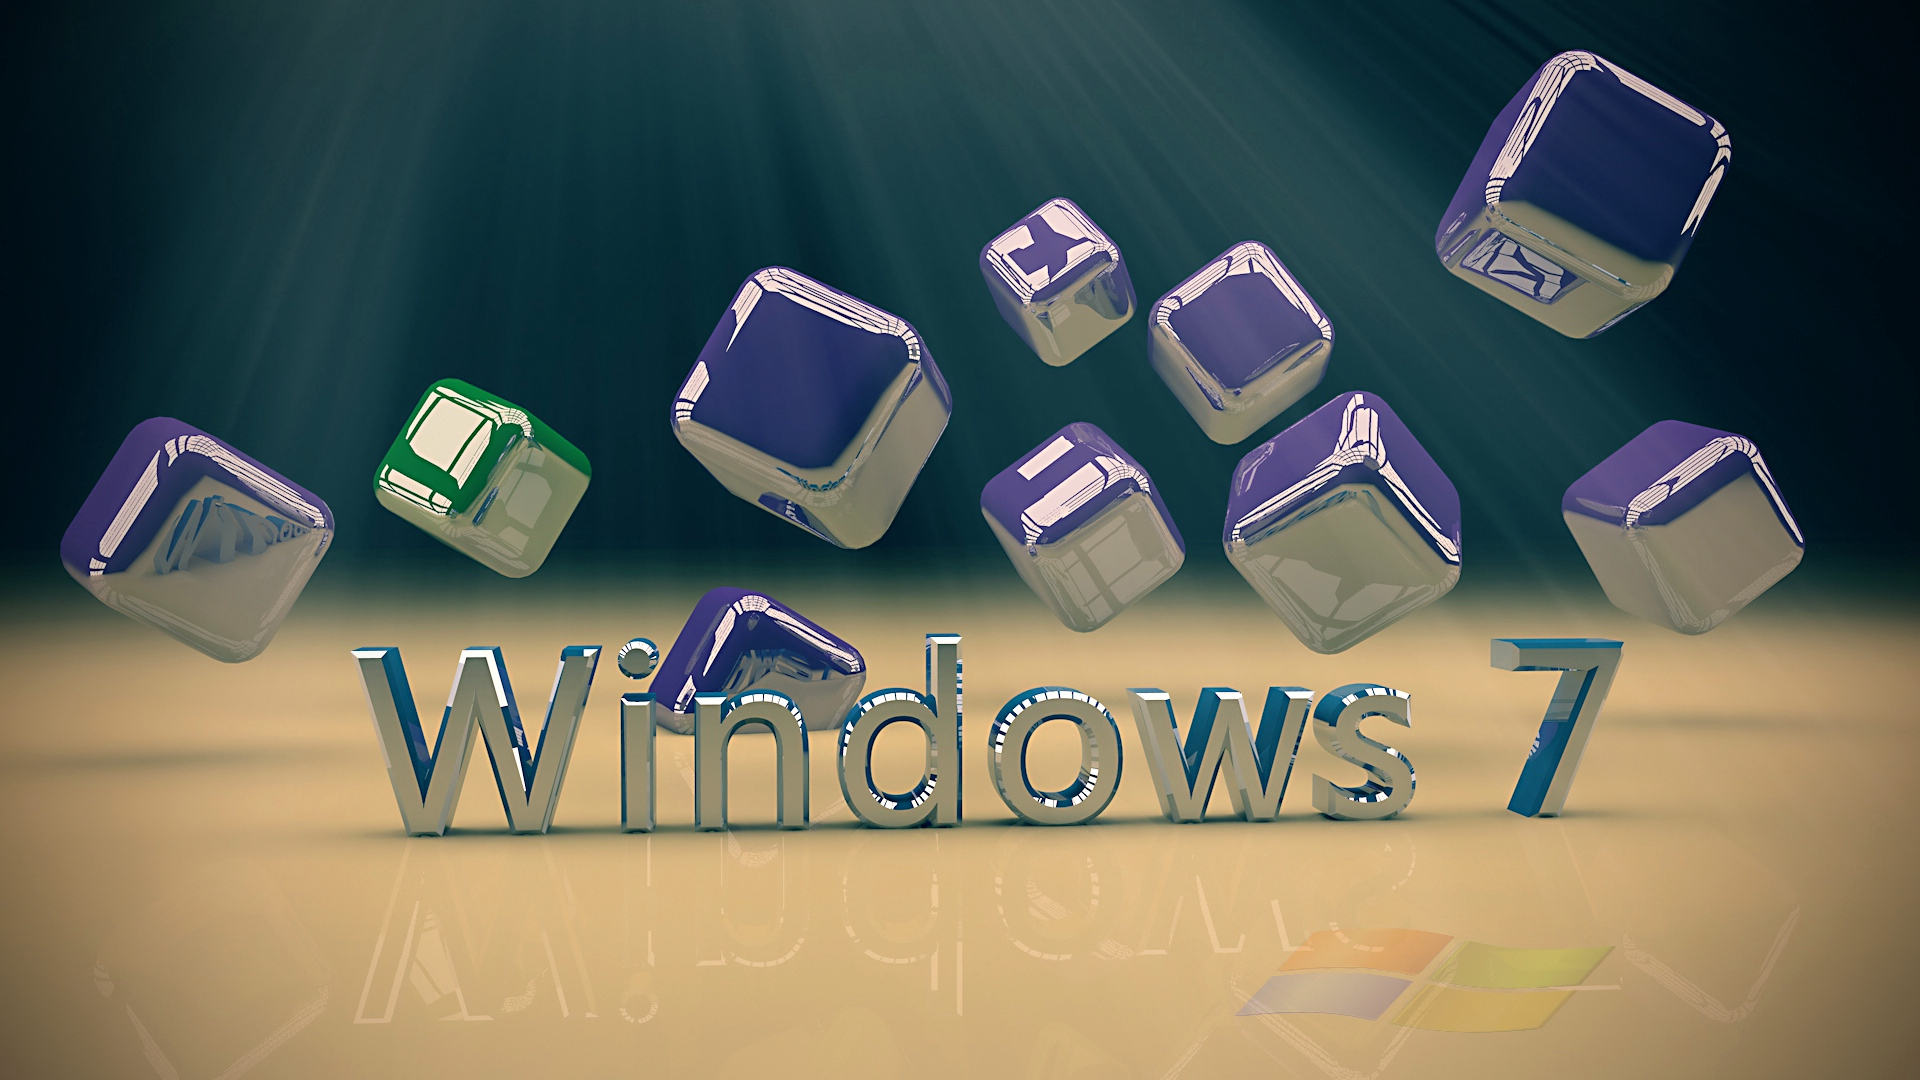 Wallpaper Windows 7 Computer Operating System Cube 1920x1080